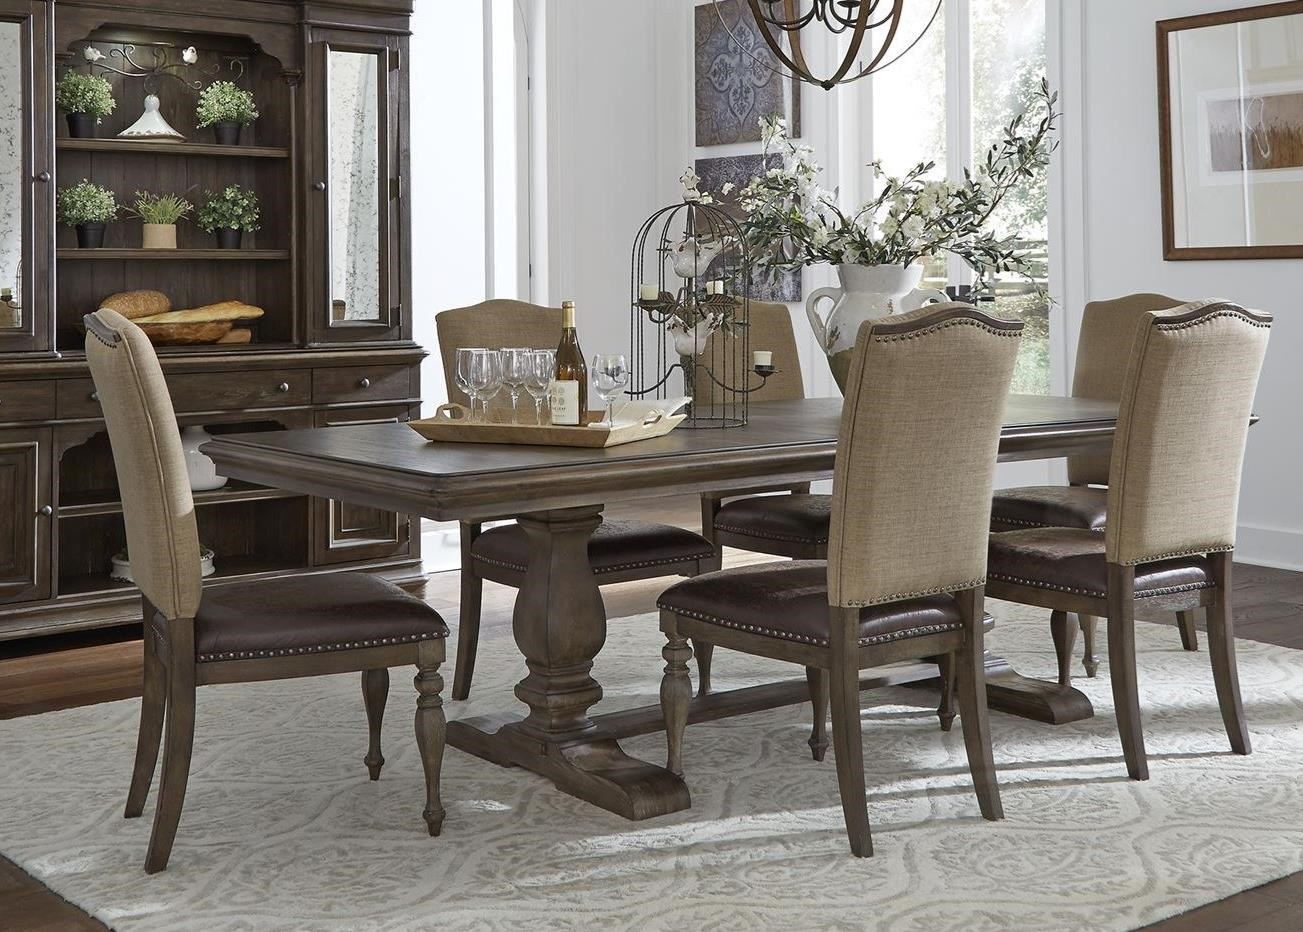 Homestead 7-Piece Table and Chair Set by Liberty Furniture at Catalog Outlet